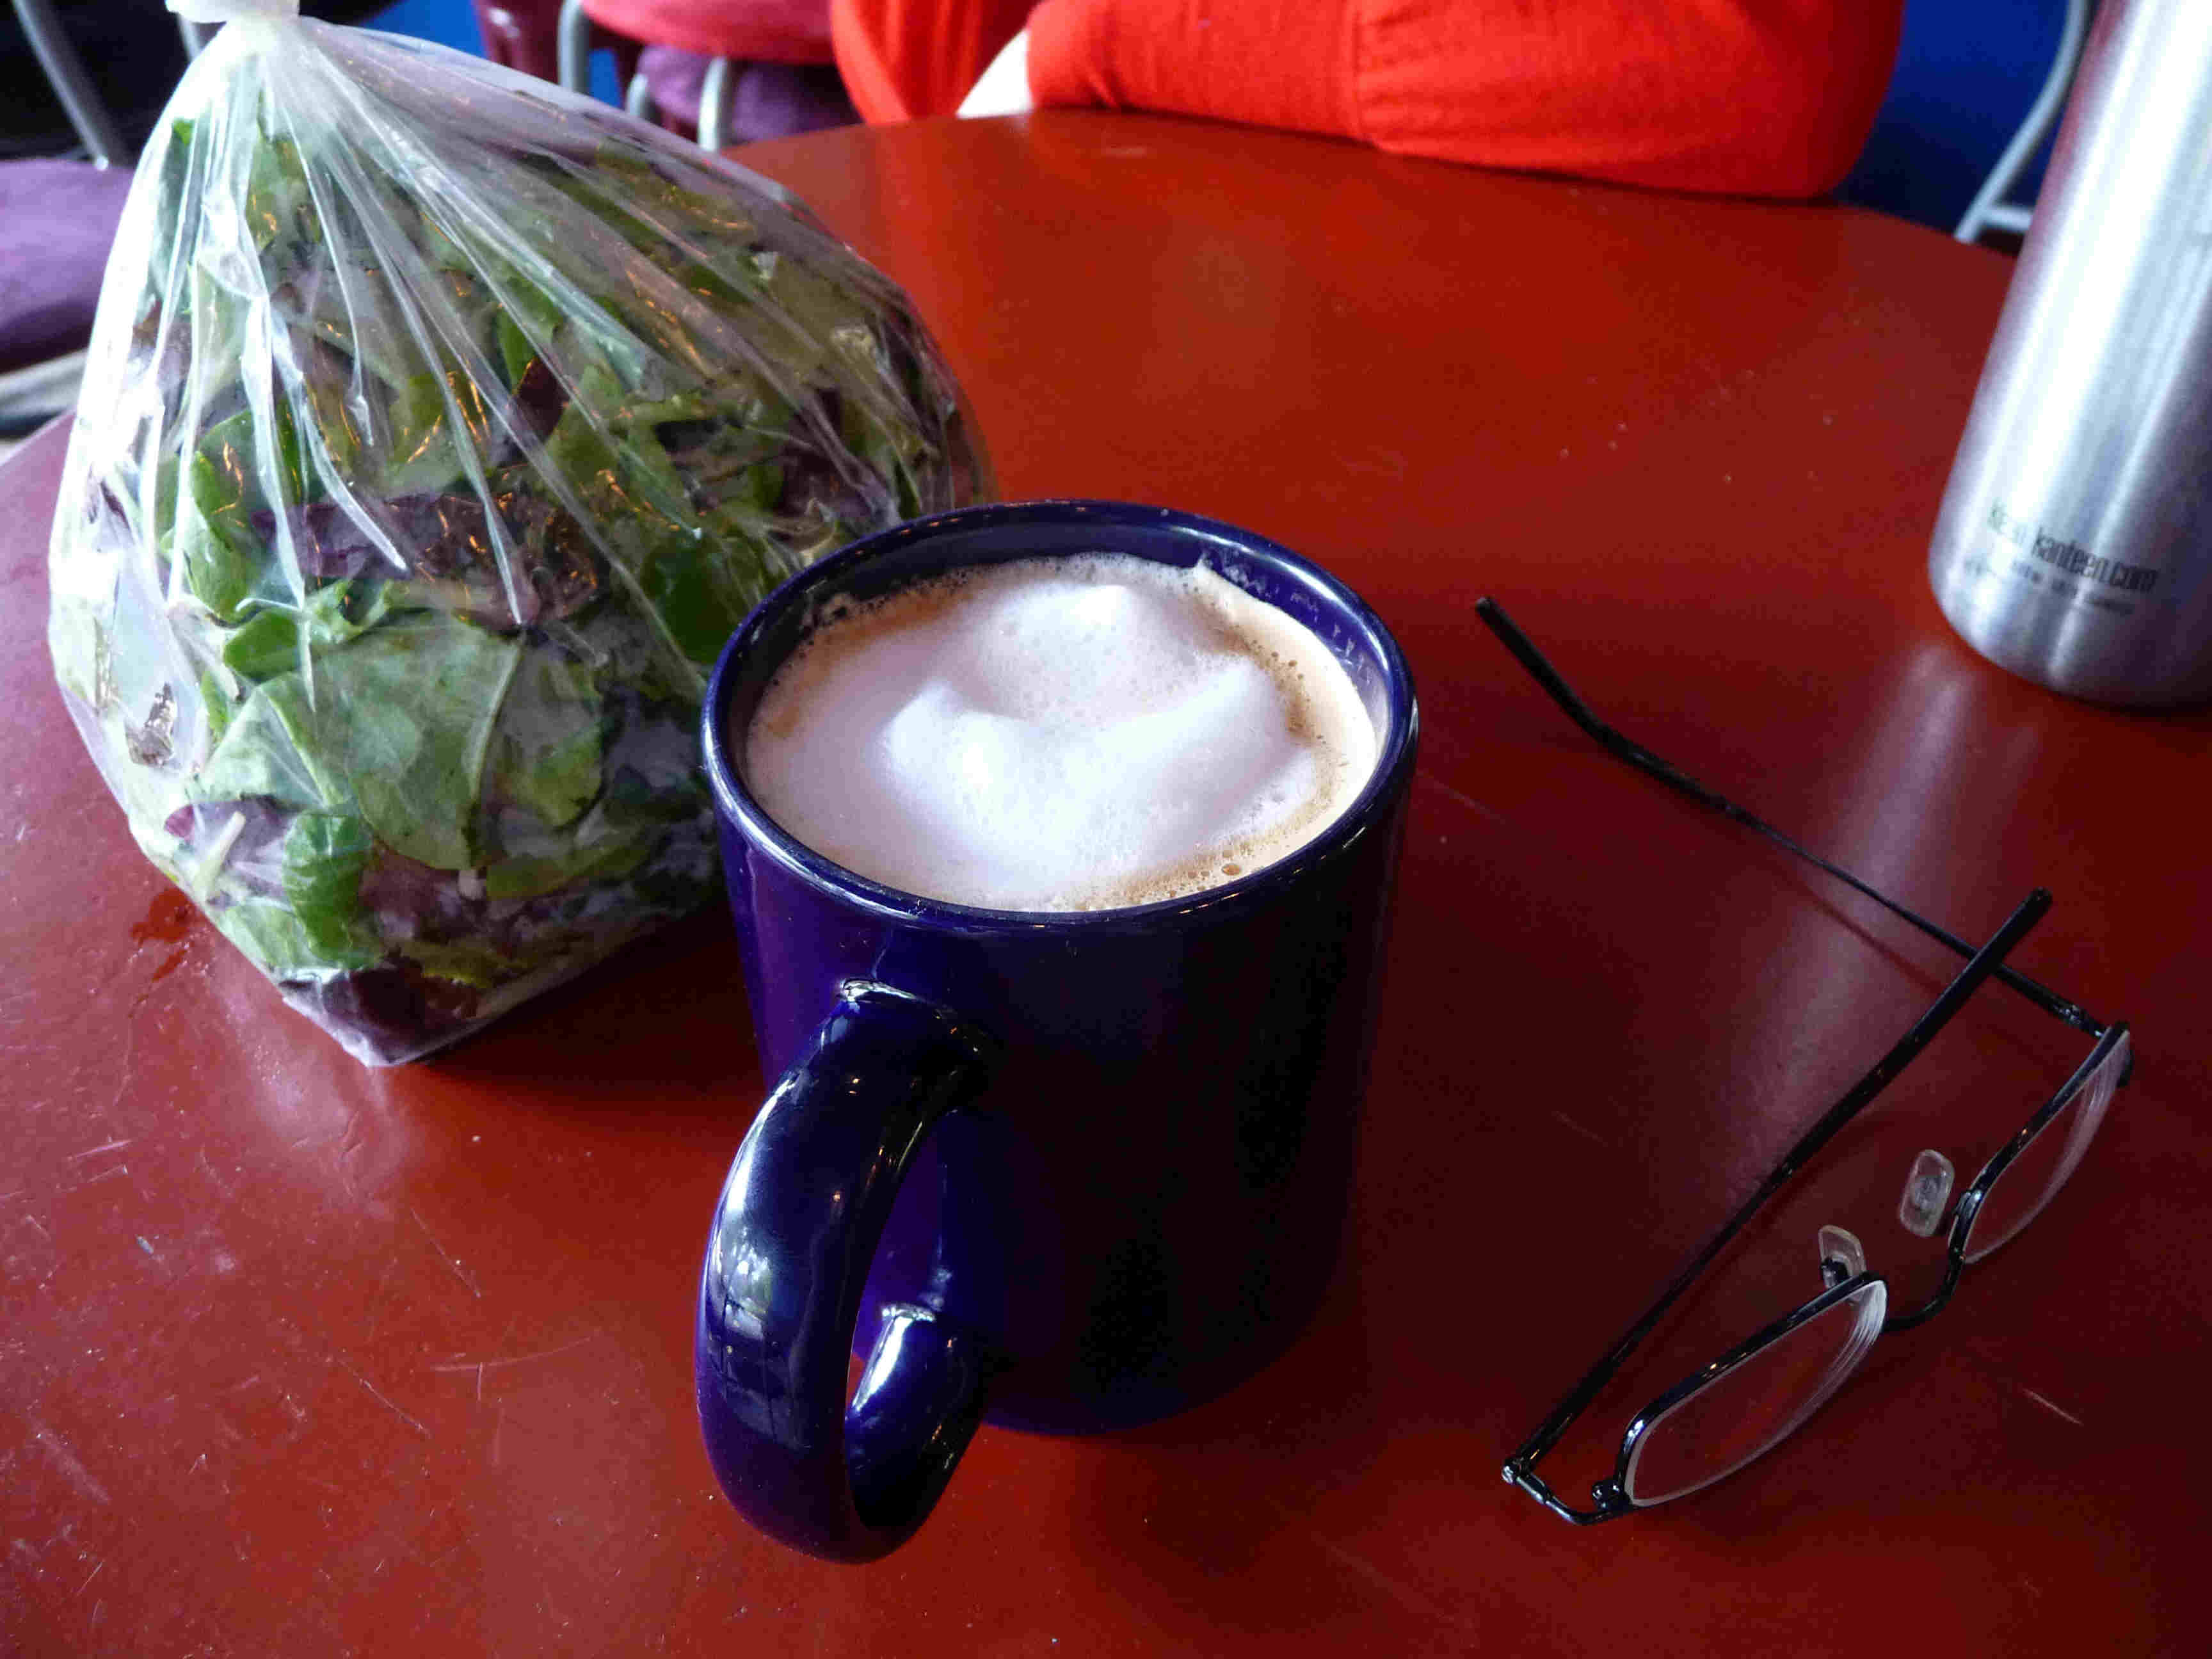 A cappuccino next to some mixed greens.